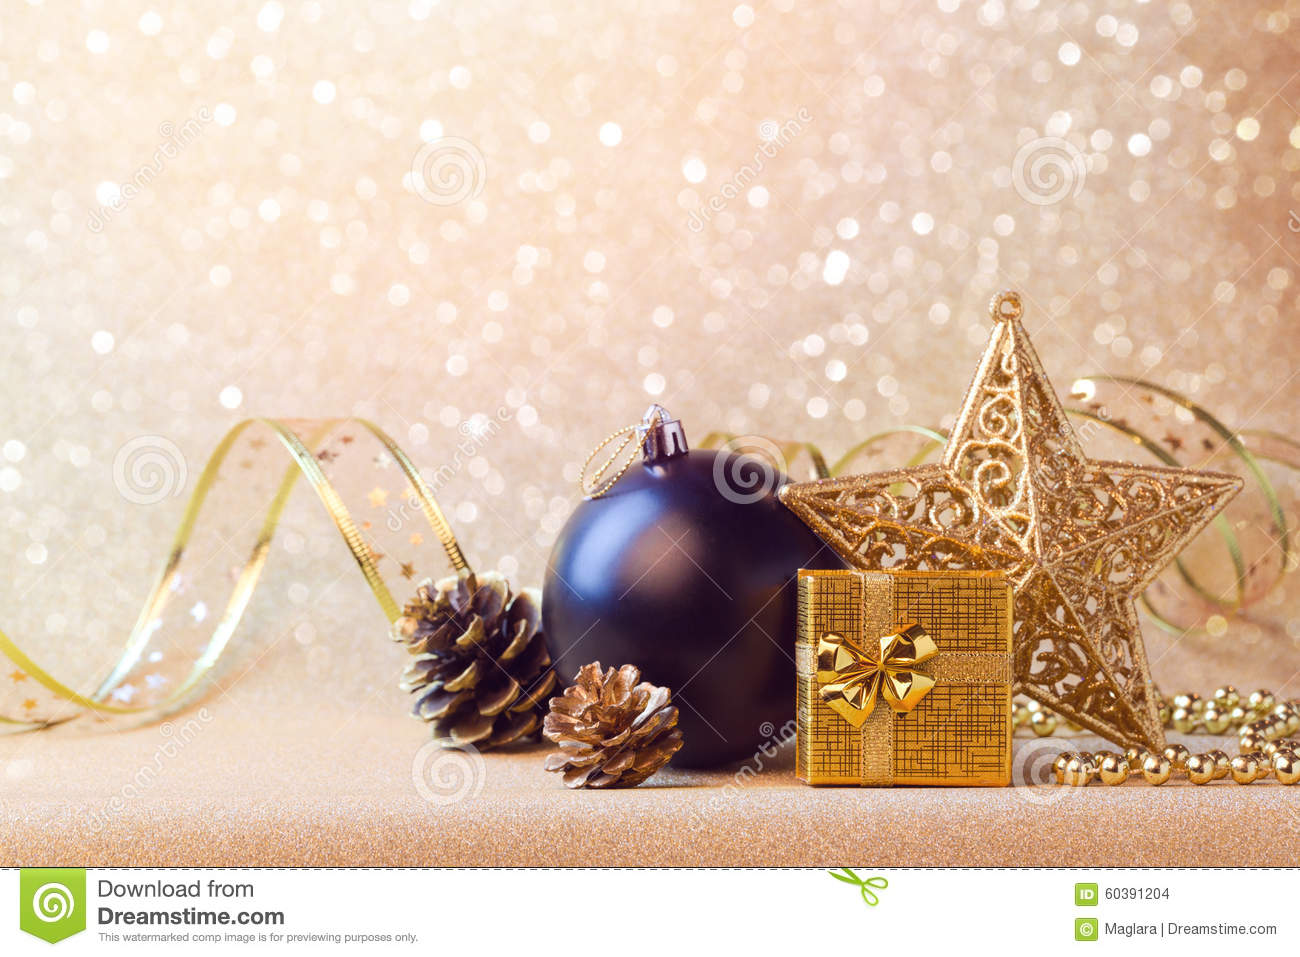 christmas decorations in black and gold over glitter background